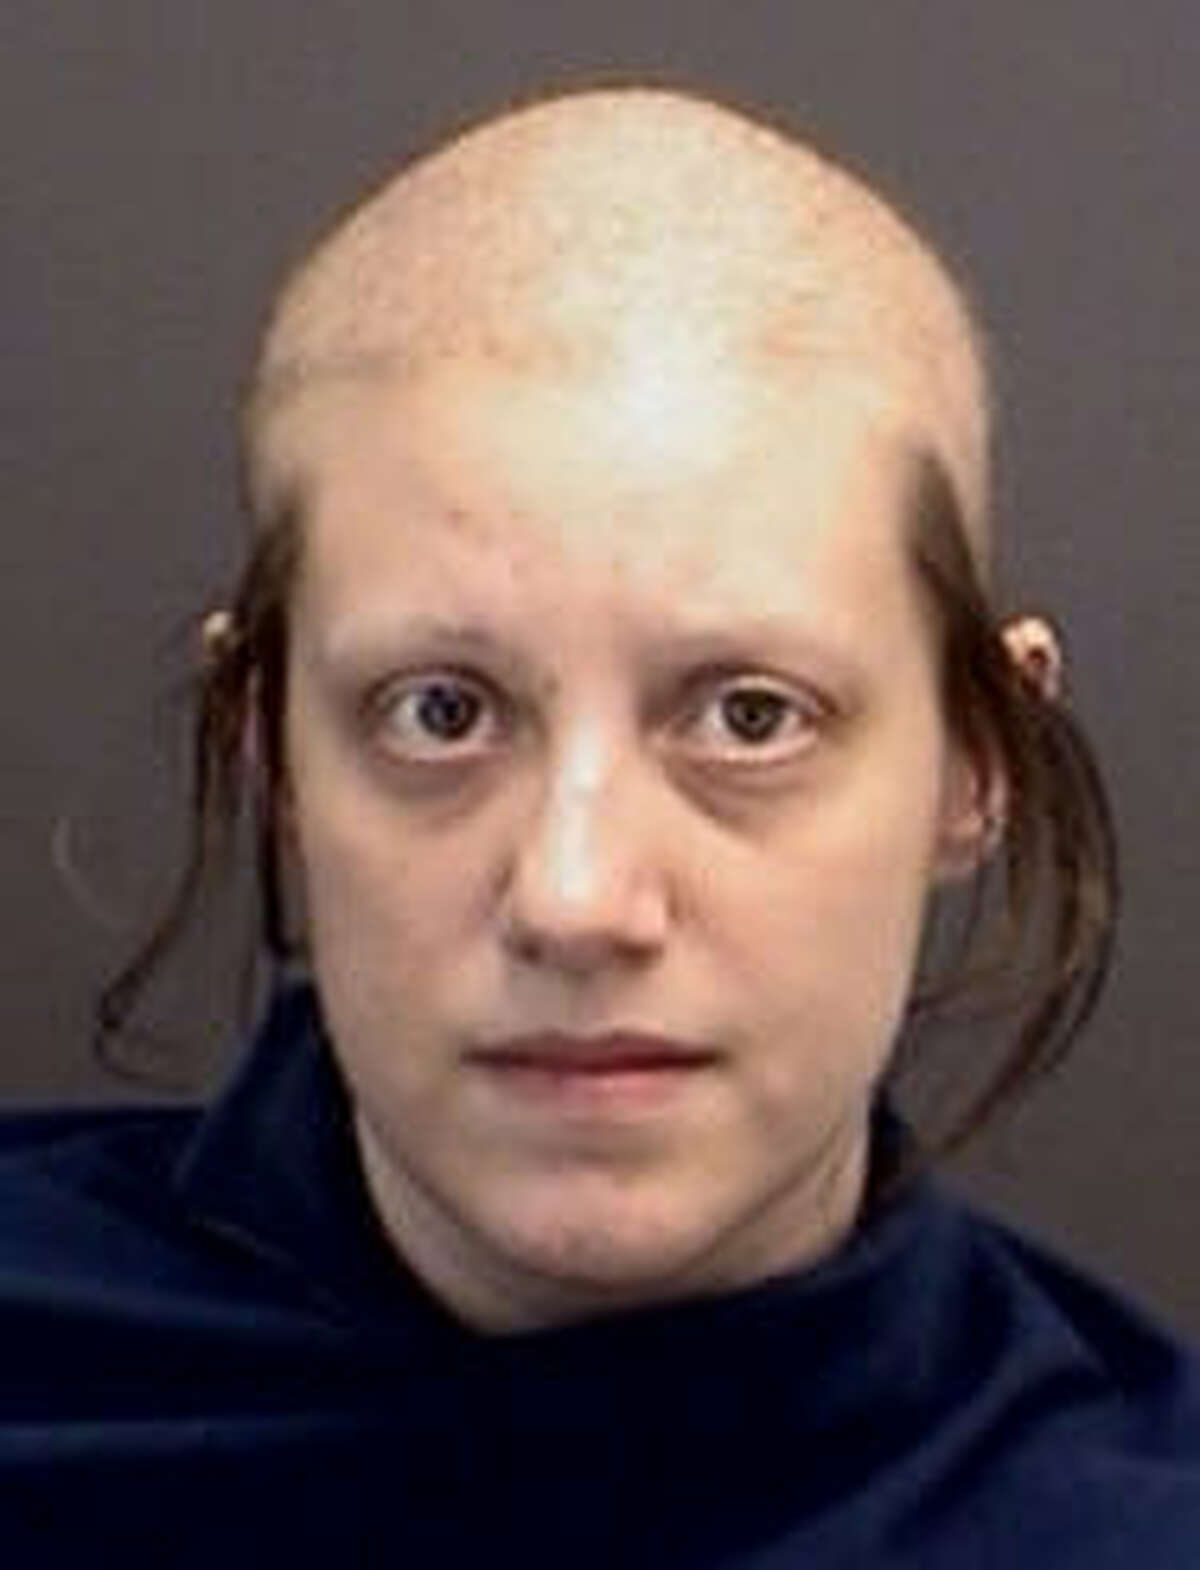 Sara Elizabeth Russell was arrested in North Texas for allegedly smuggling drugs into a correctional facility.